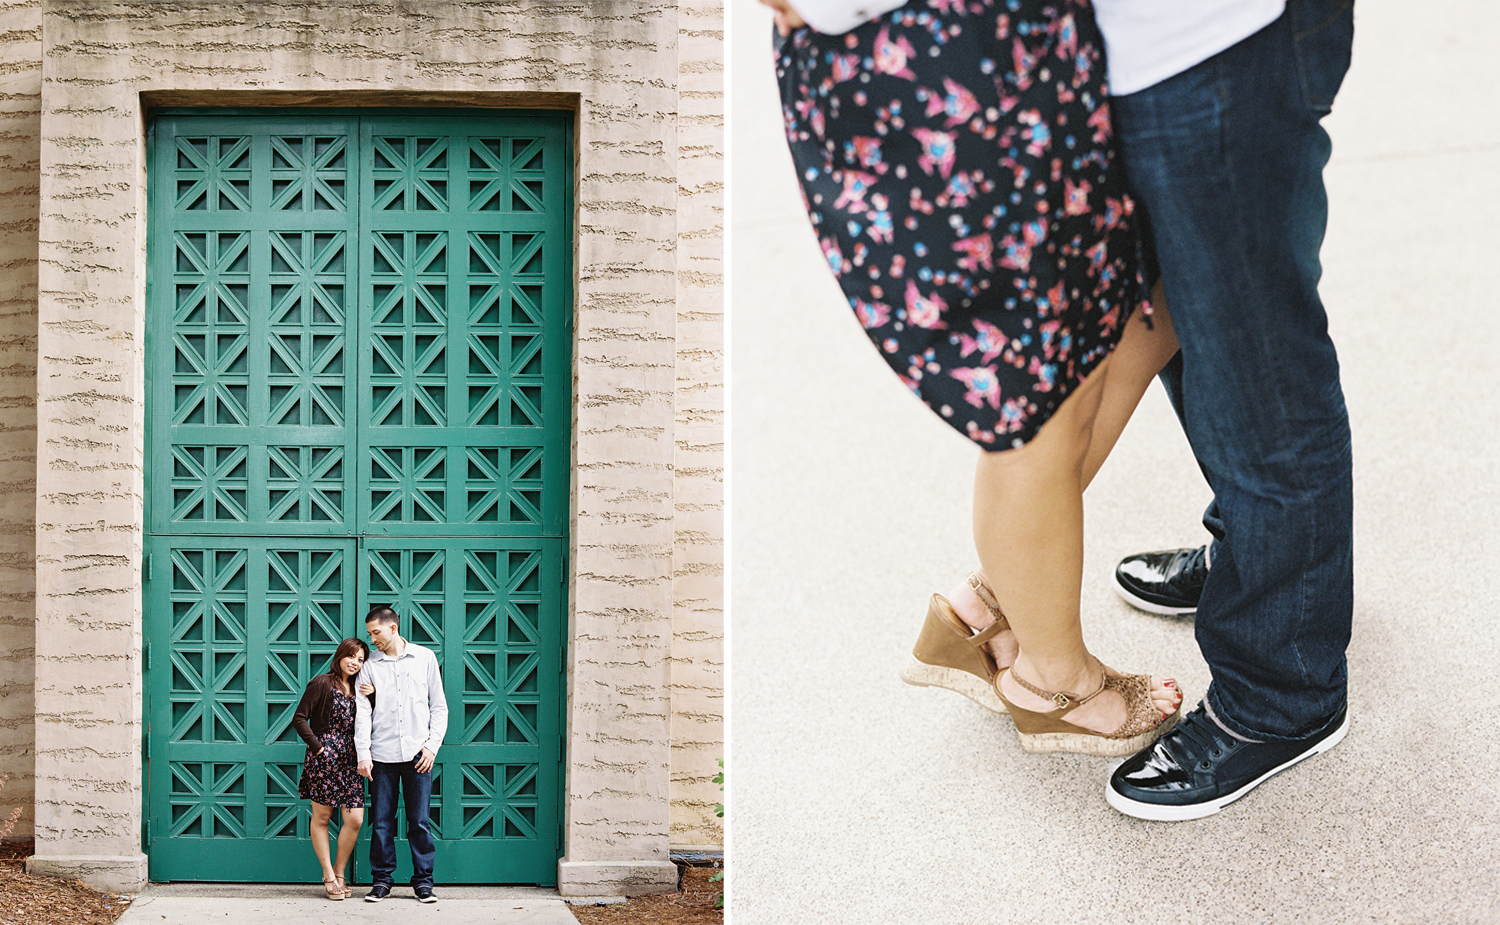 San-Francisco-Engagement-Session-Palace-of-Fine-Arts-Green -Door.jpg